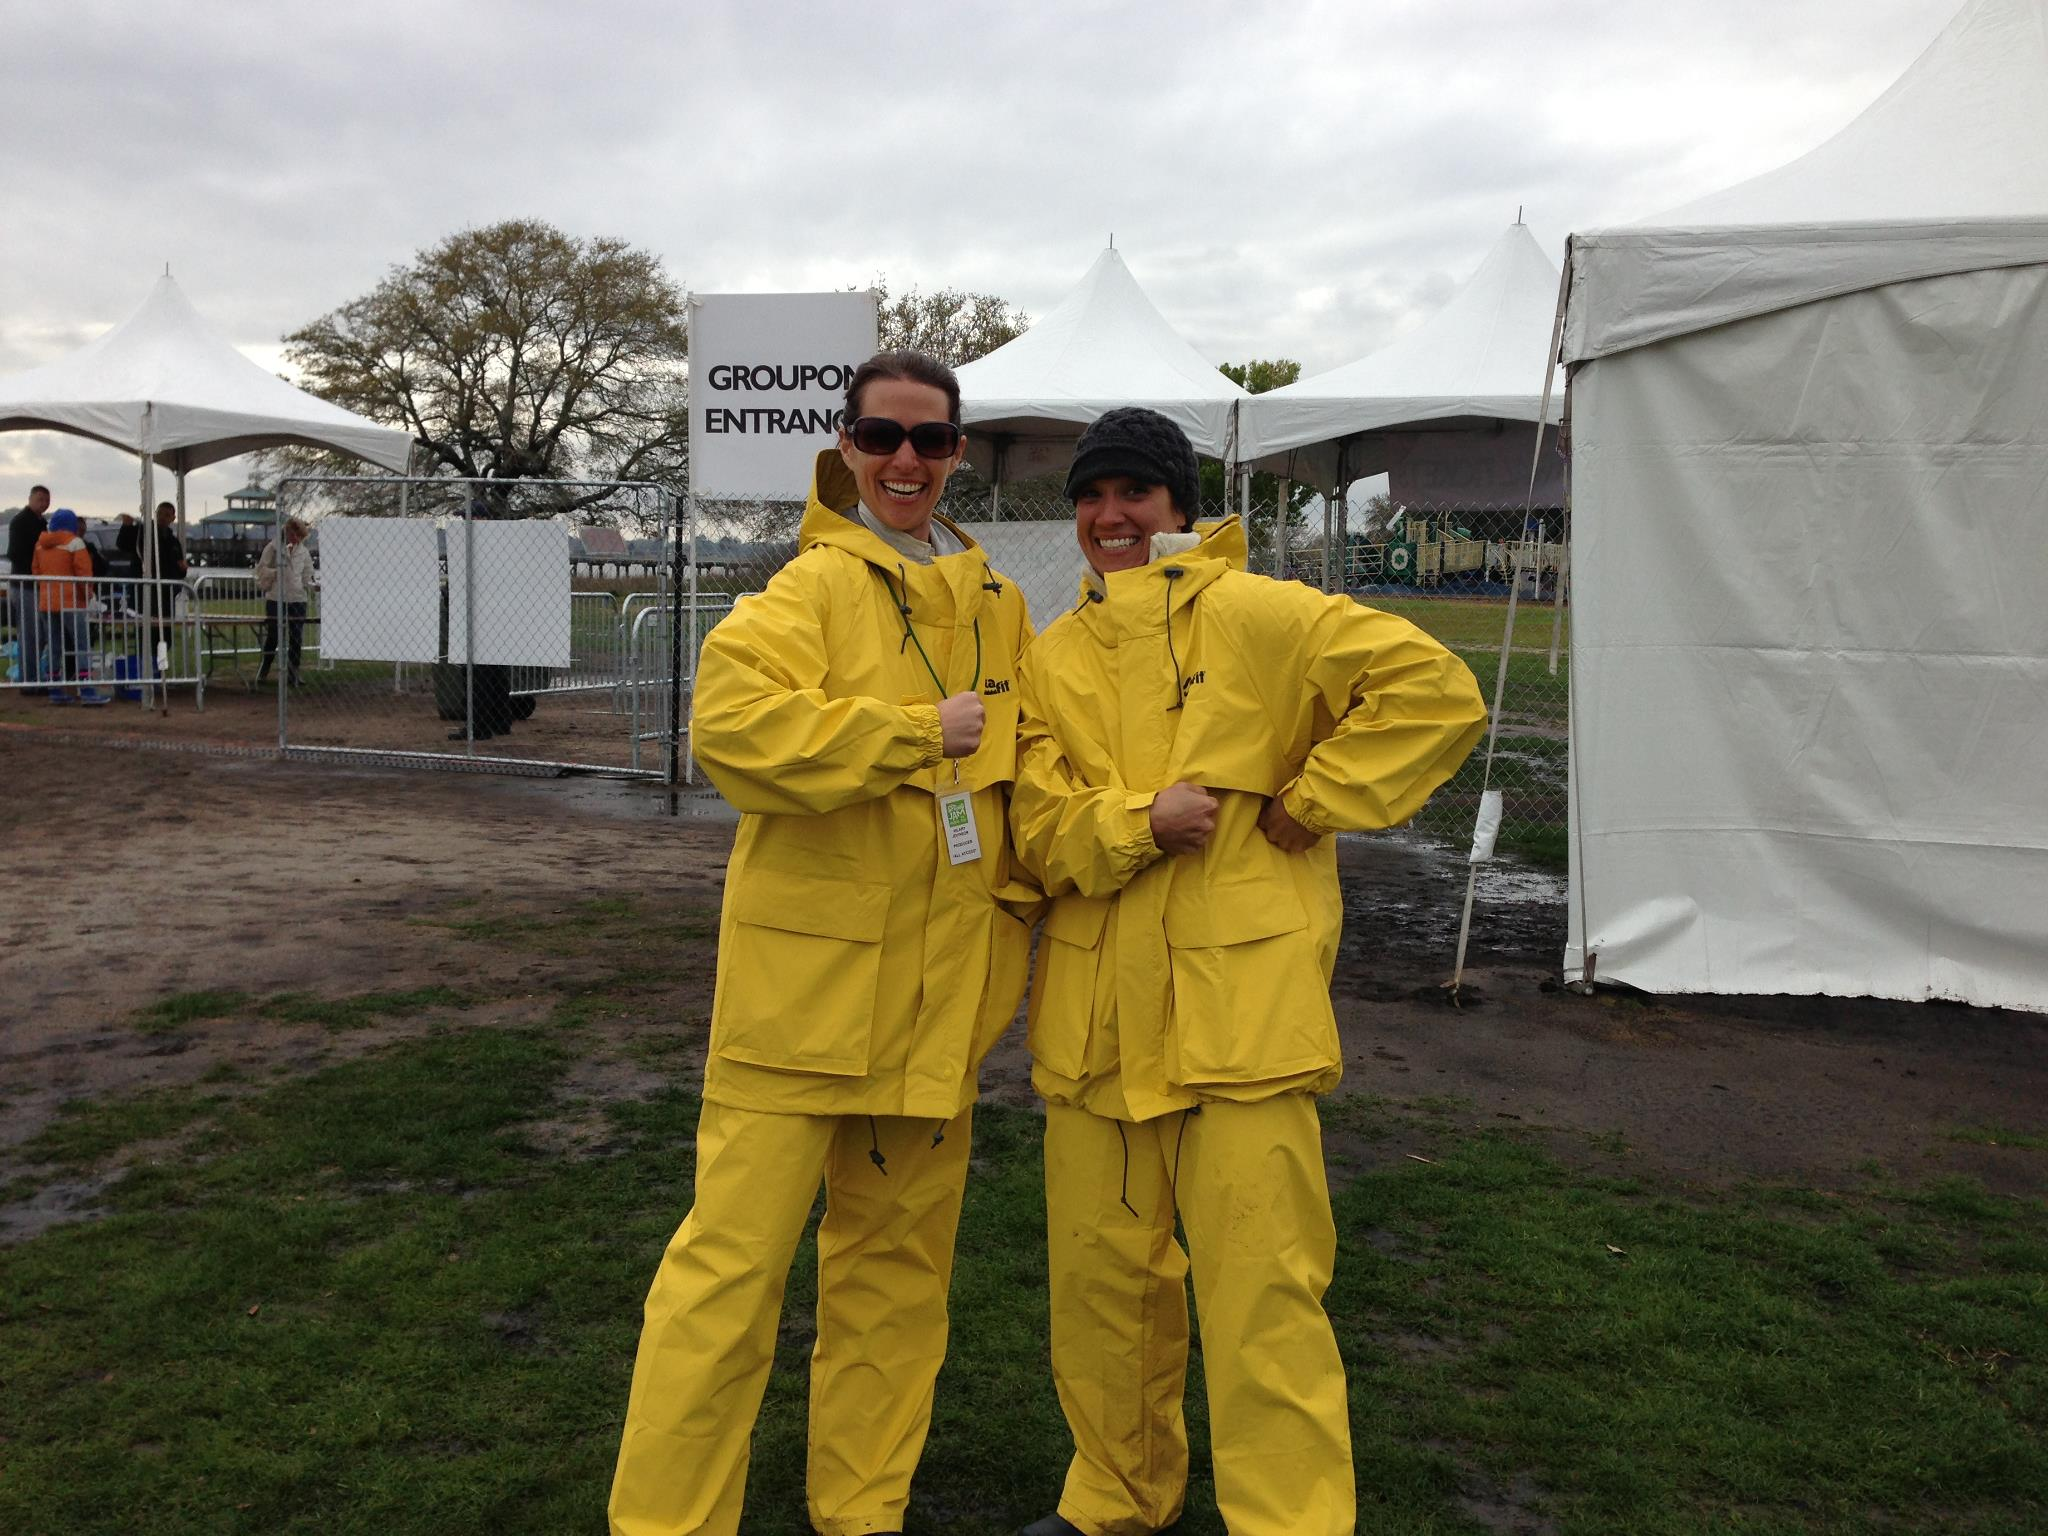 Foul Weather Gear in full force at the 1st Annual Spring Jam Music Fest